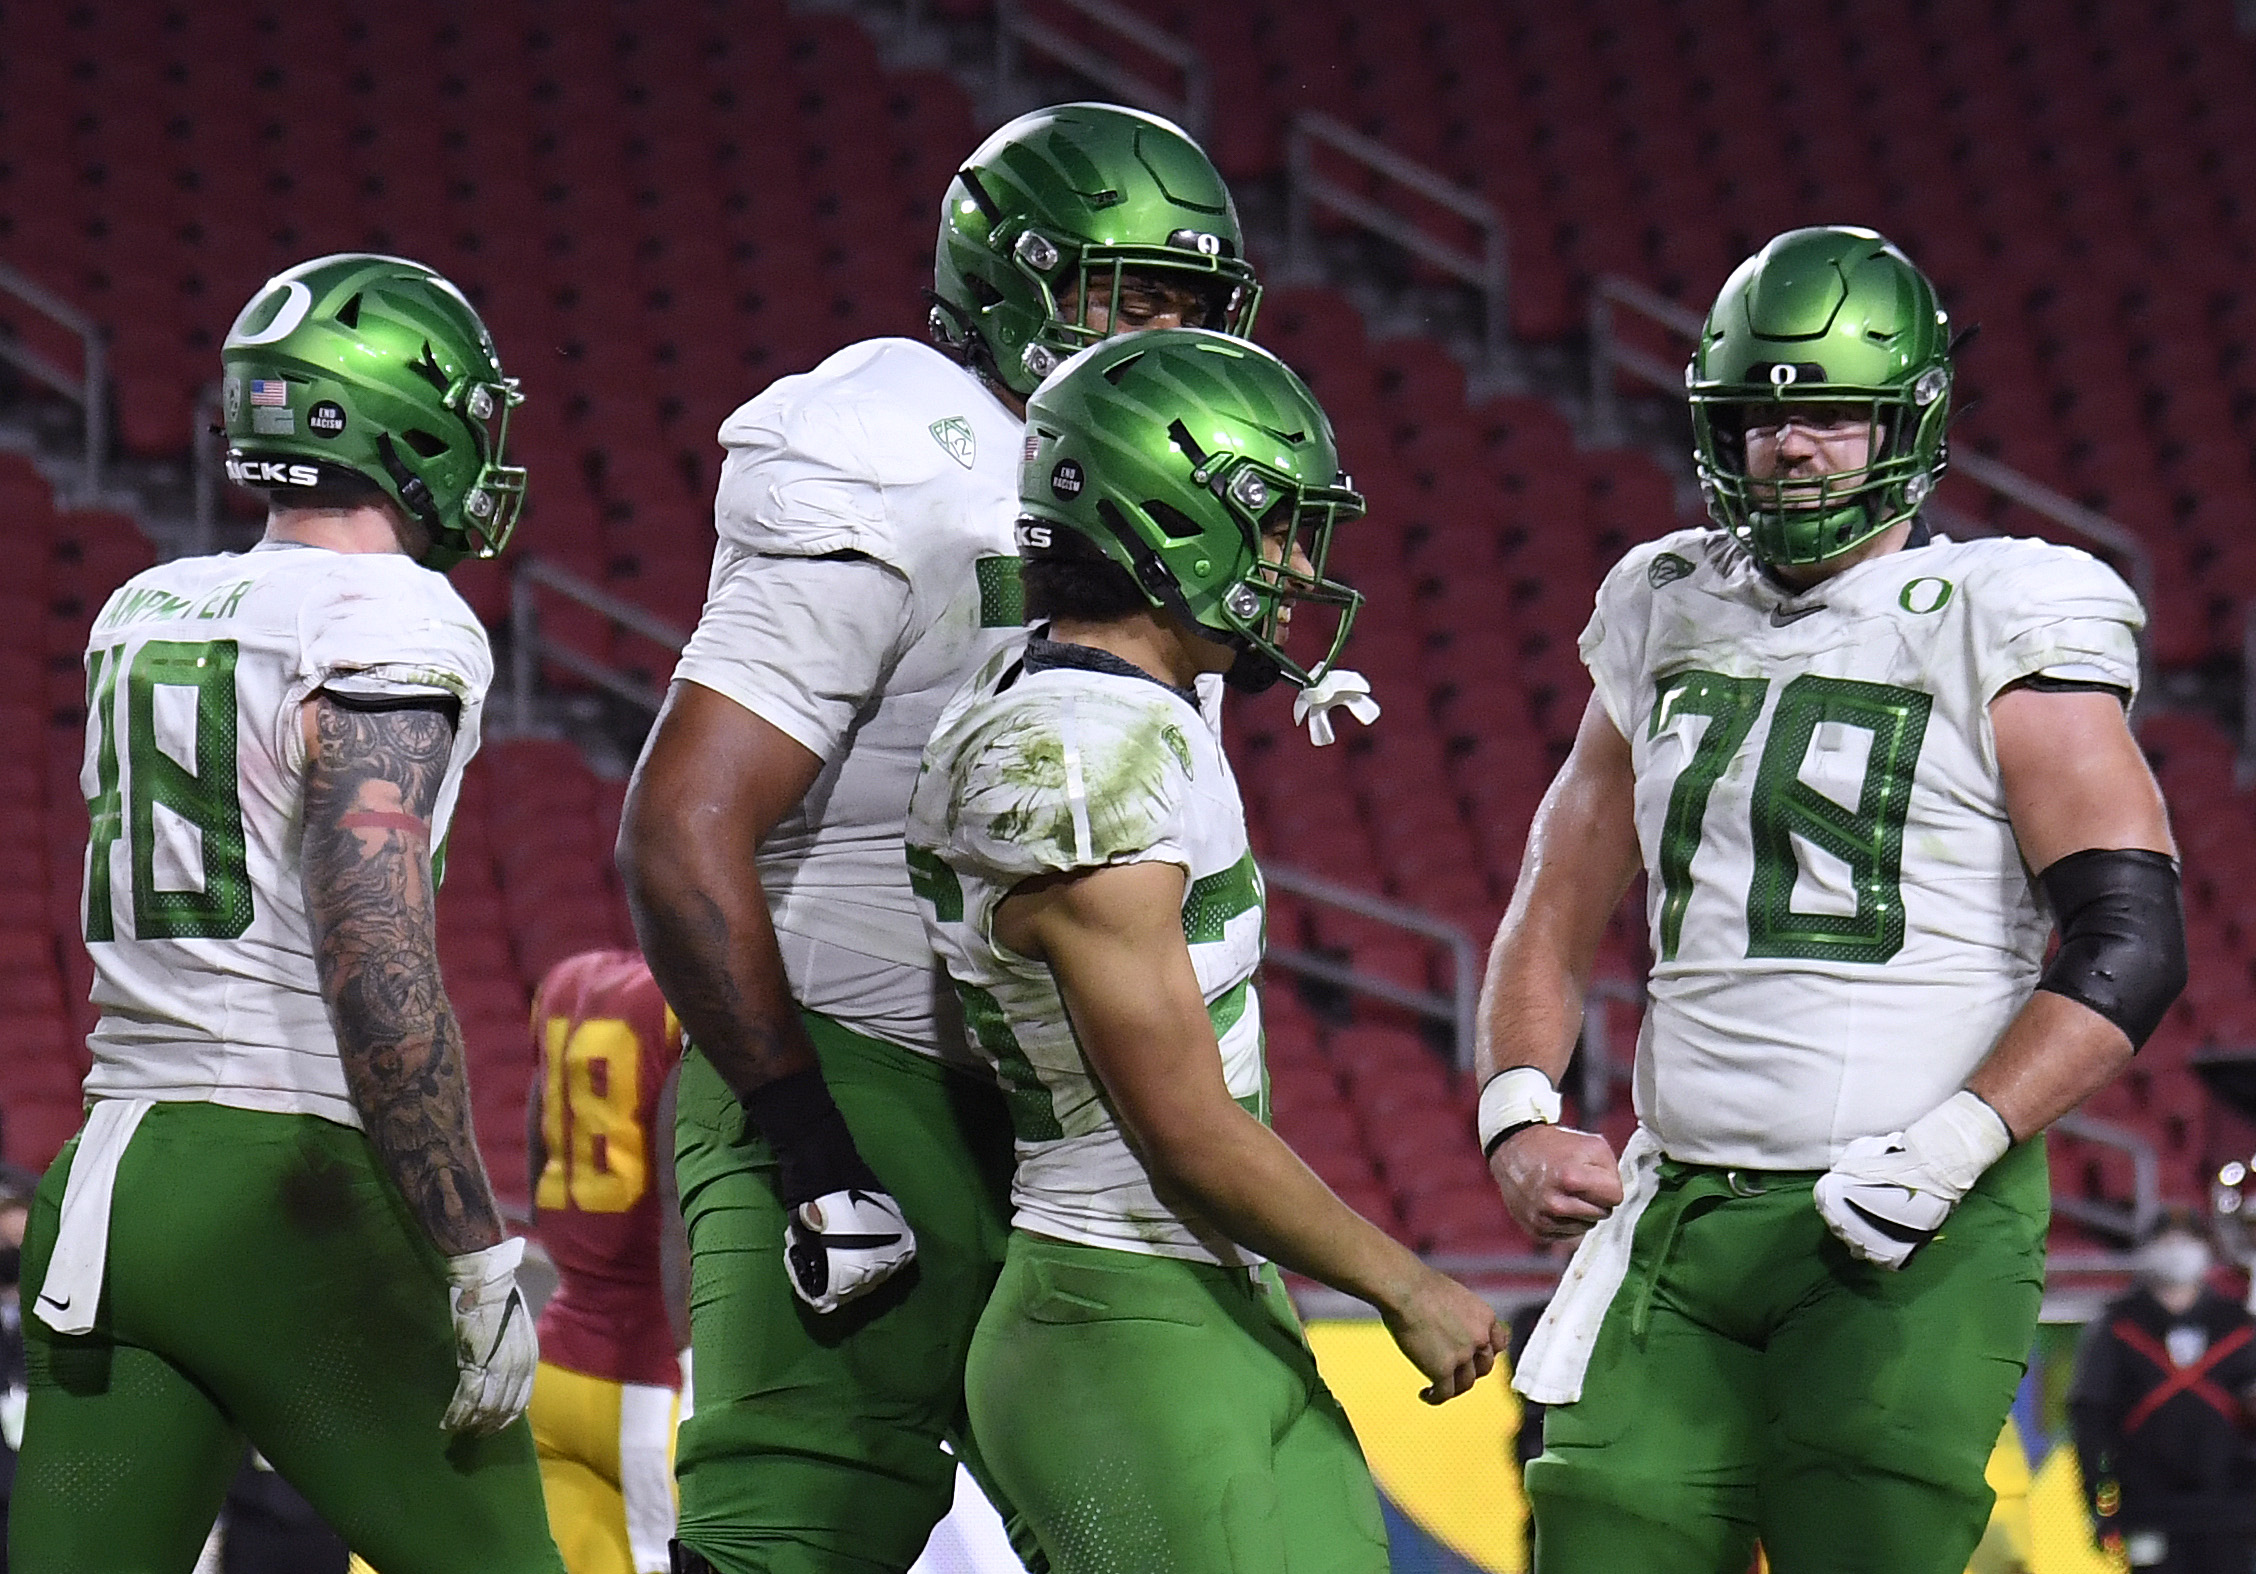 Travis Dye #26 of the Oregon Ducks celebrates his touchdown with Hunter Kampmoyer #48, Steven Jones #74 and Alex Forsyth #78, to take a 31-21 lead over the USC Trojans, during the third quarter in the PAC 12 2020 Football Championship at United Airlines Field at the Coliseum on December 18, 2020 in Los Angeles, California.